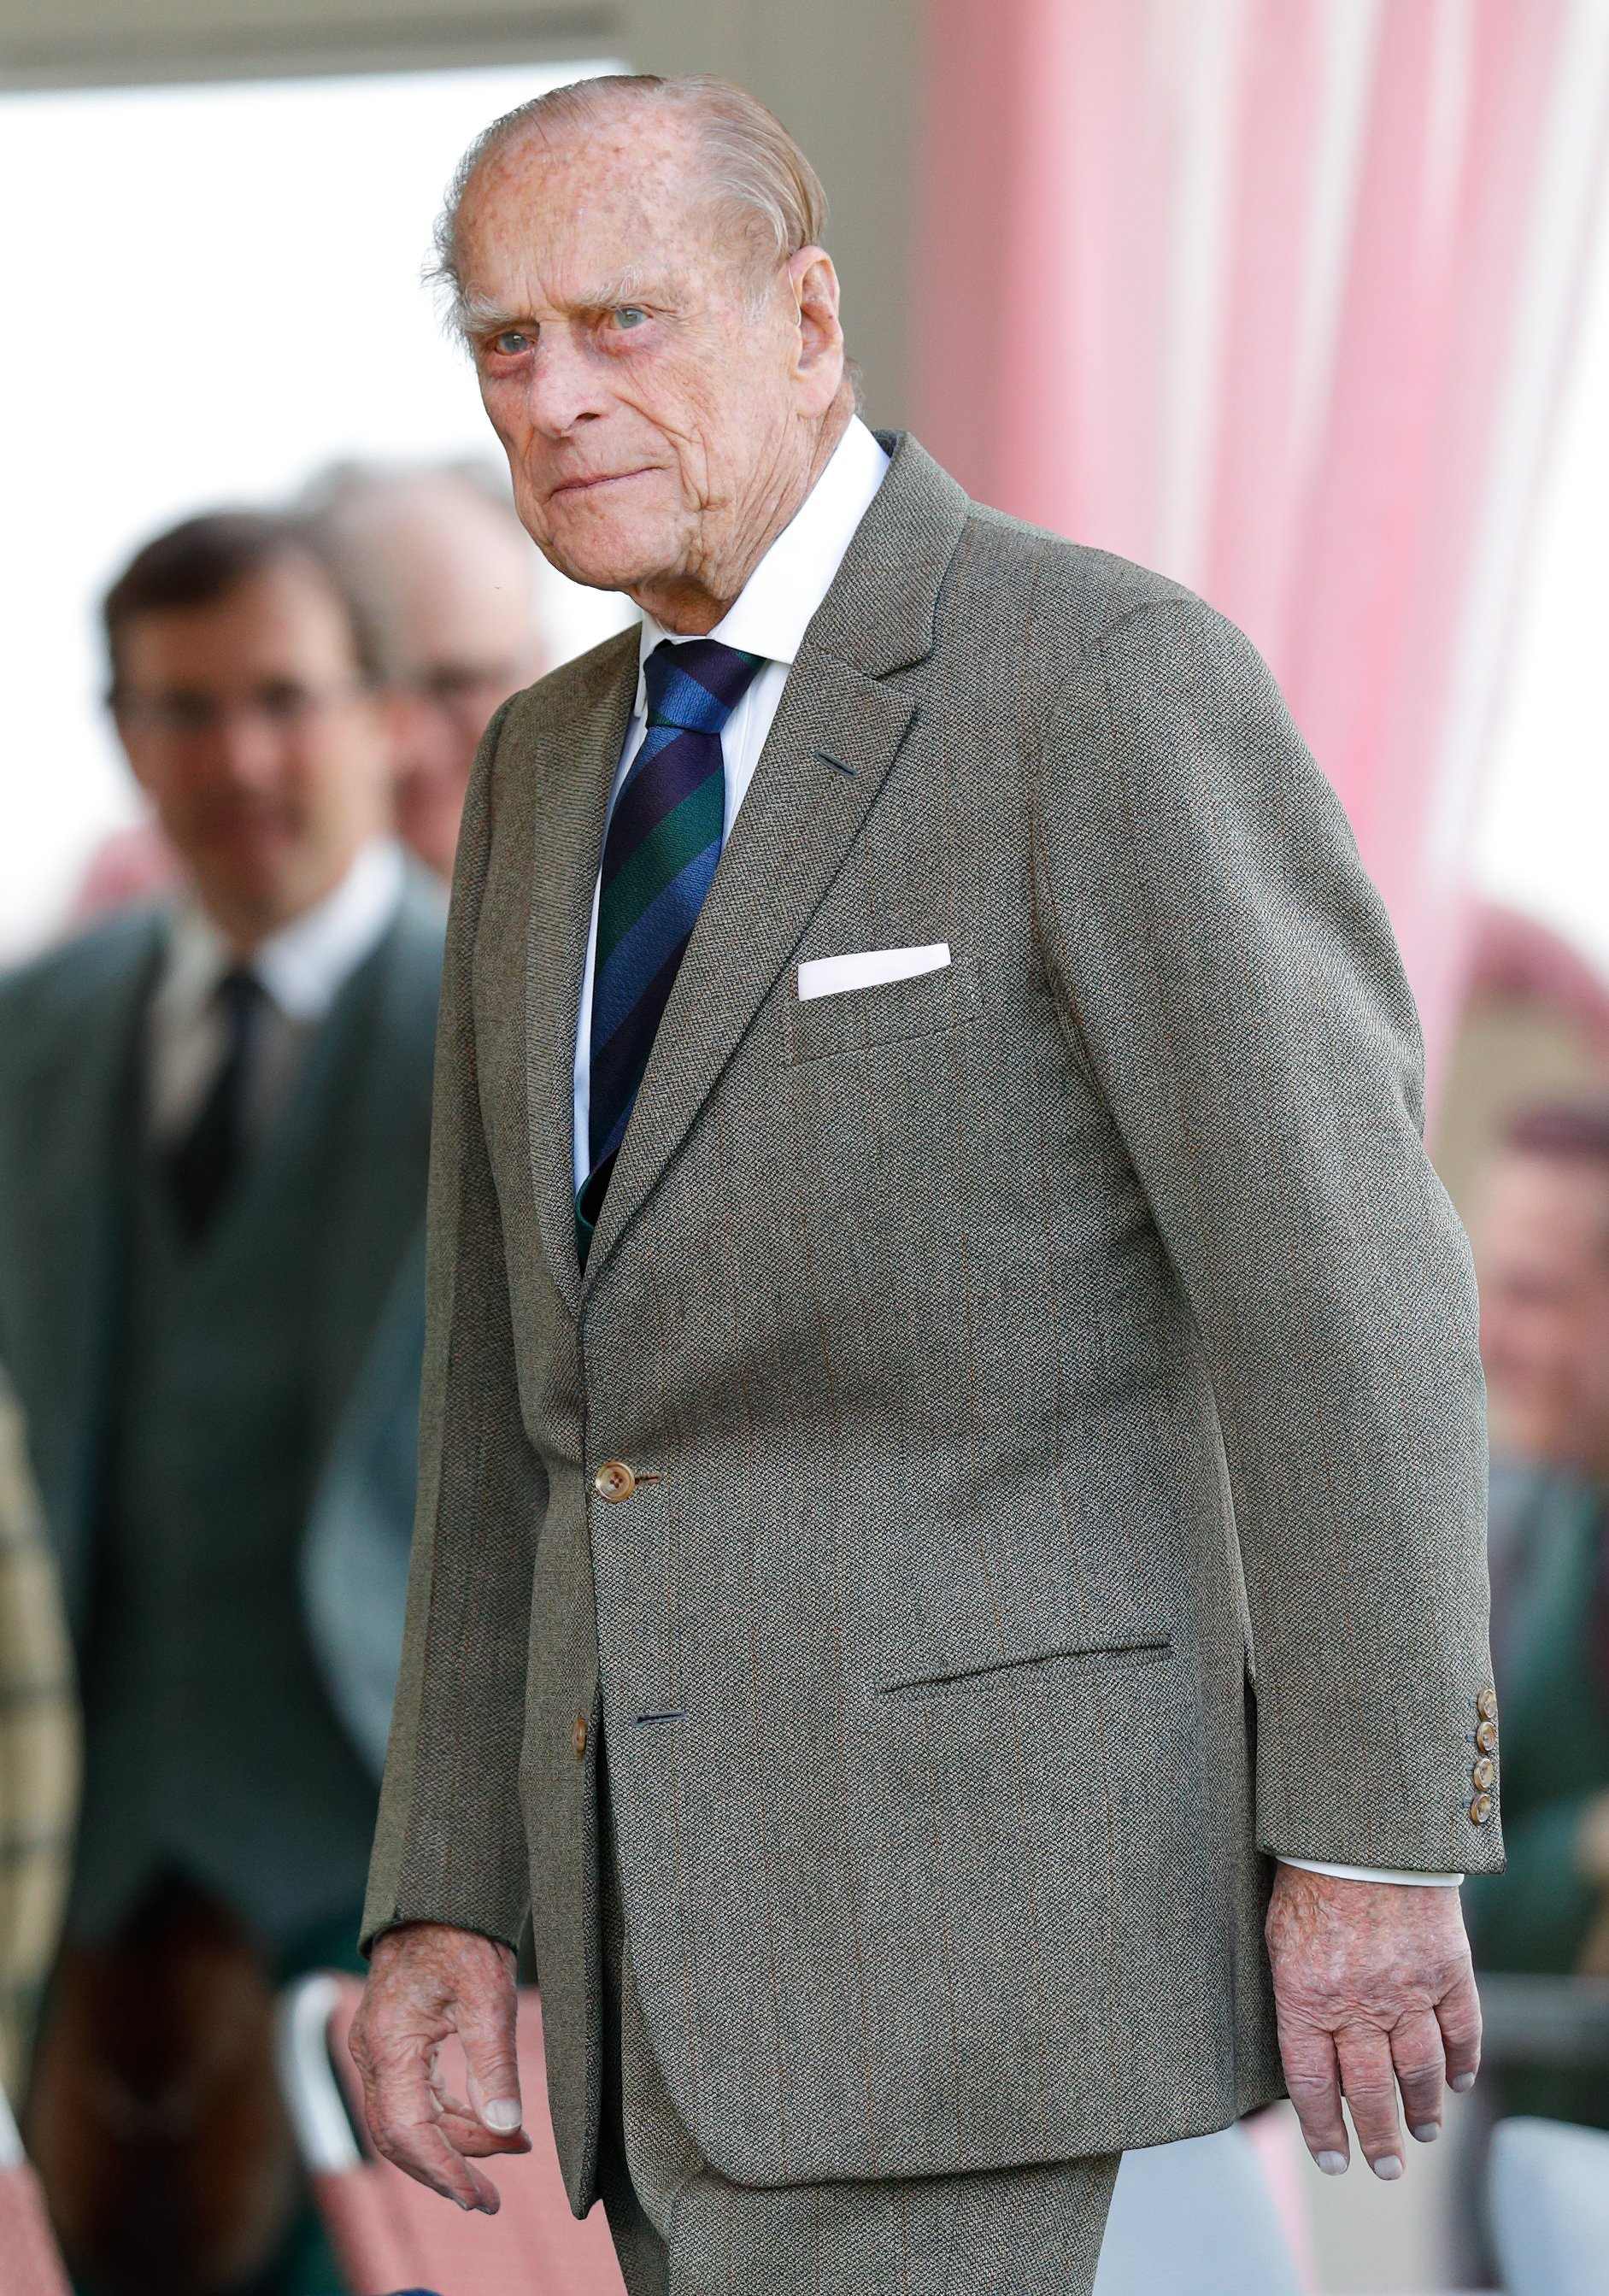 Prince Philip pictured at the 2017 Braemar Gathering at The Princess Royal and Duke of Fife Memorial Park, 2017, Scotland. | Photo: Getty Images